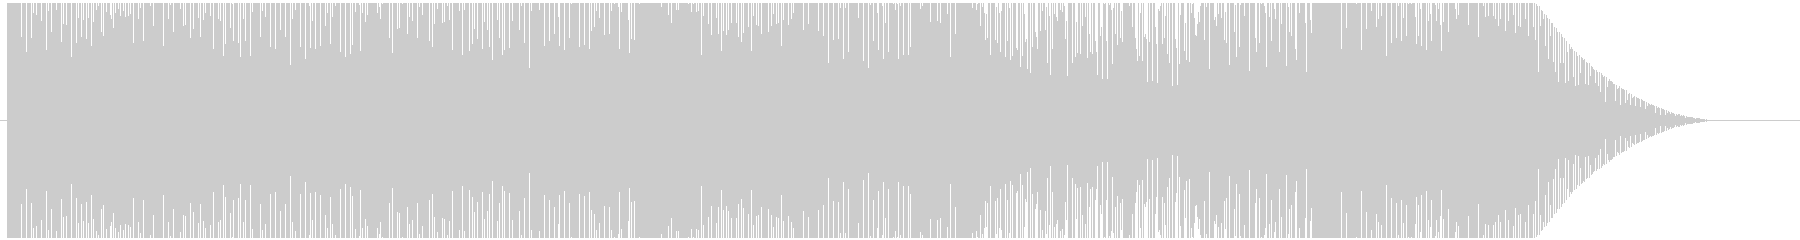 Loop song of game ・ battle type thing's unreproduced waveform